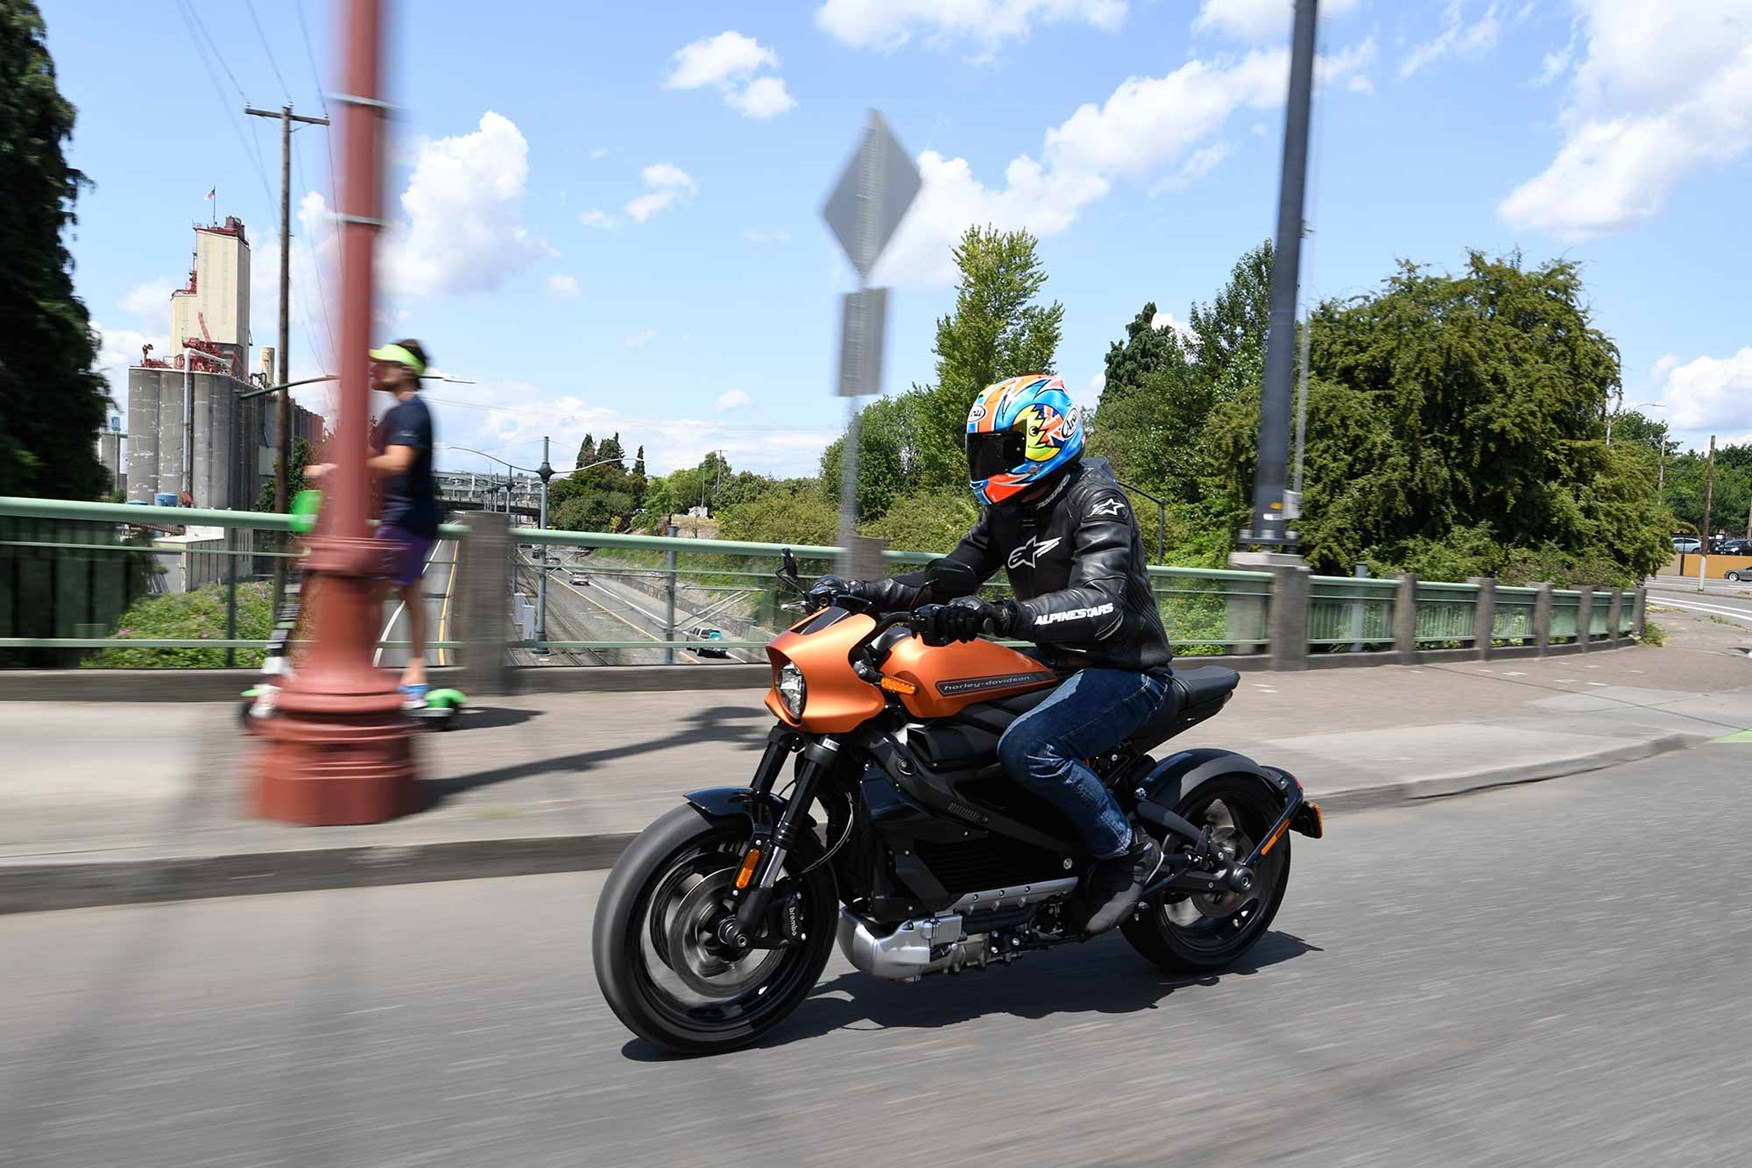 Phenomenal Harley Davidson Livewire 2019 On Review Caraccident5 Cool Chair Designs And Ideas Caraccident5Info